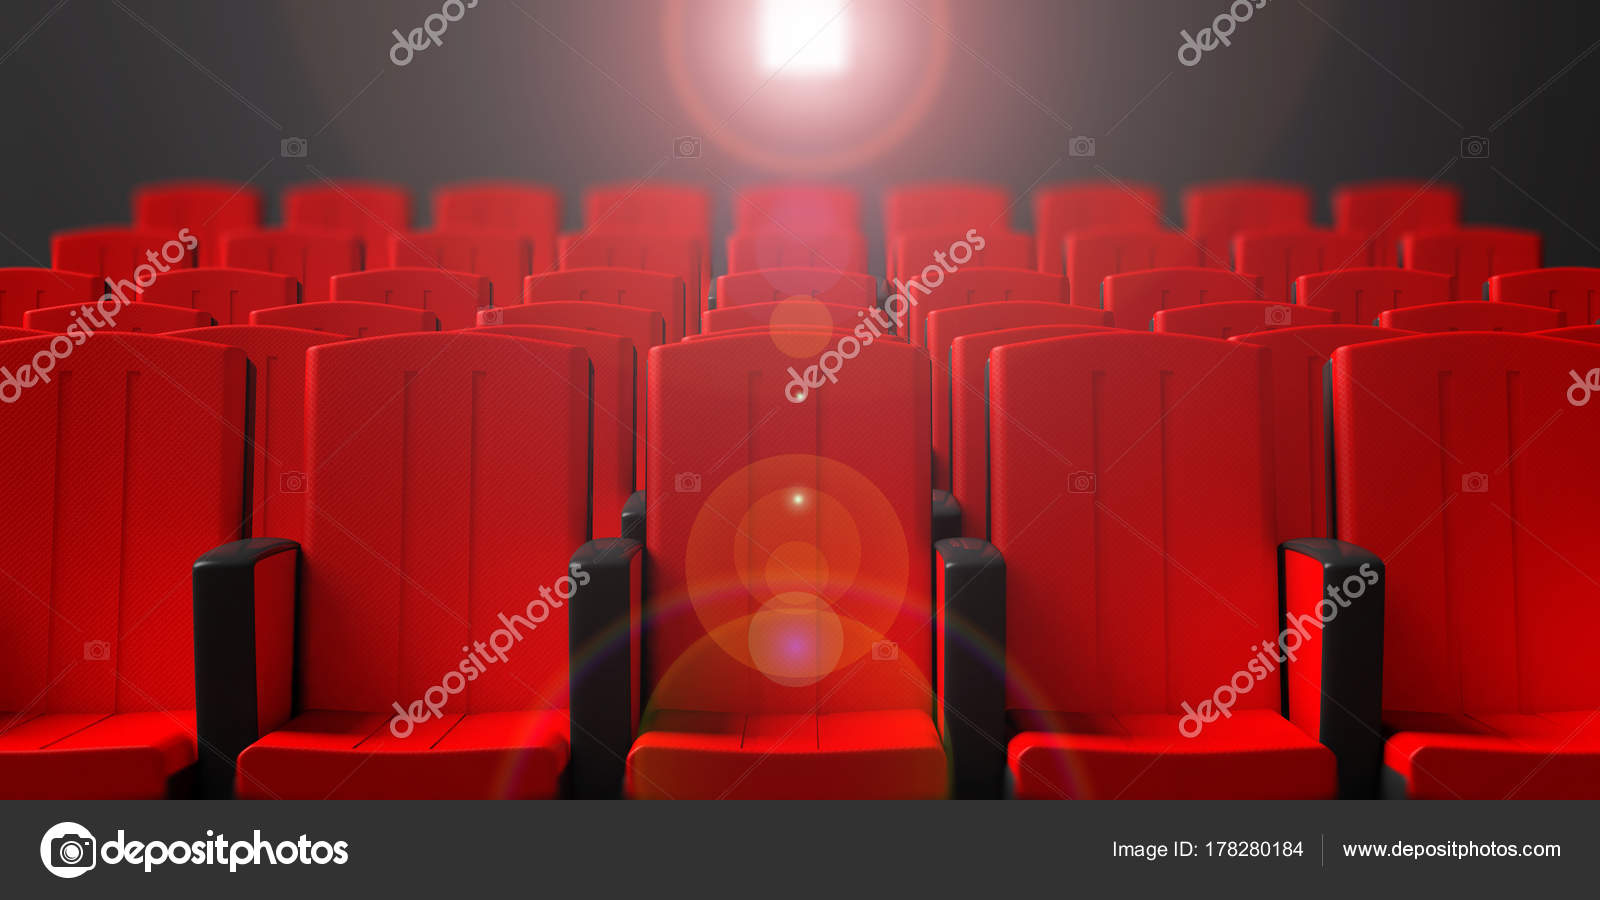 Cinema Chairs On Dark Background With Projection Light Front View 3d Illustration Stock Photo C Gioiak2 178280184